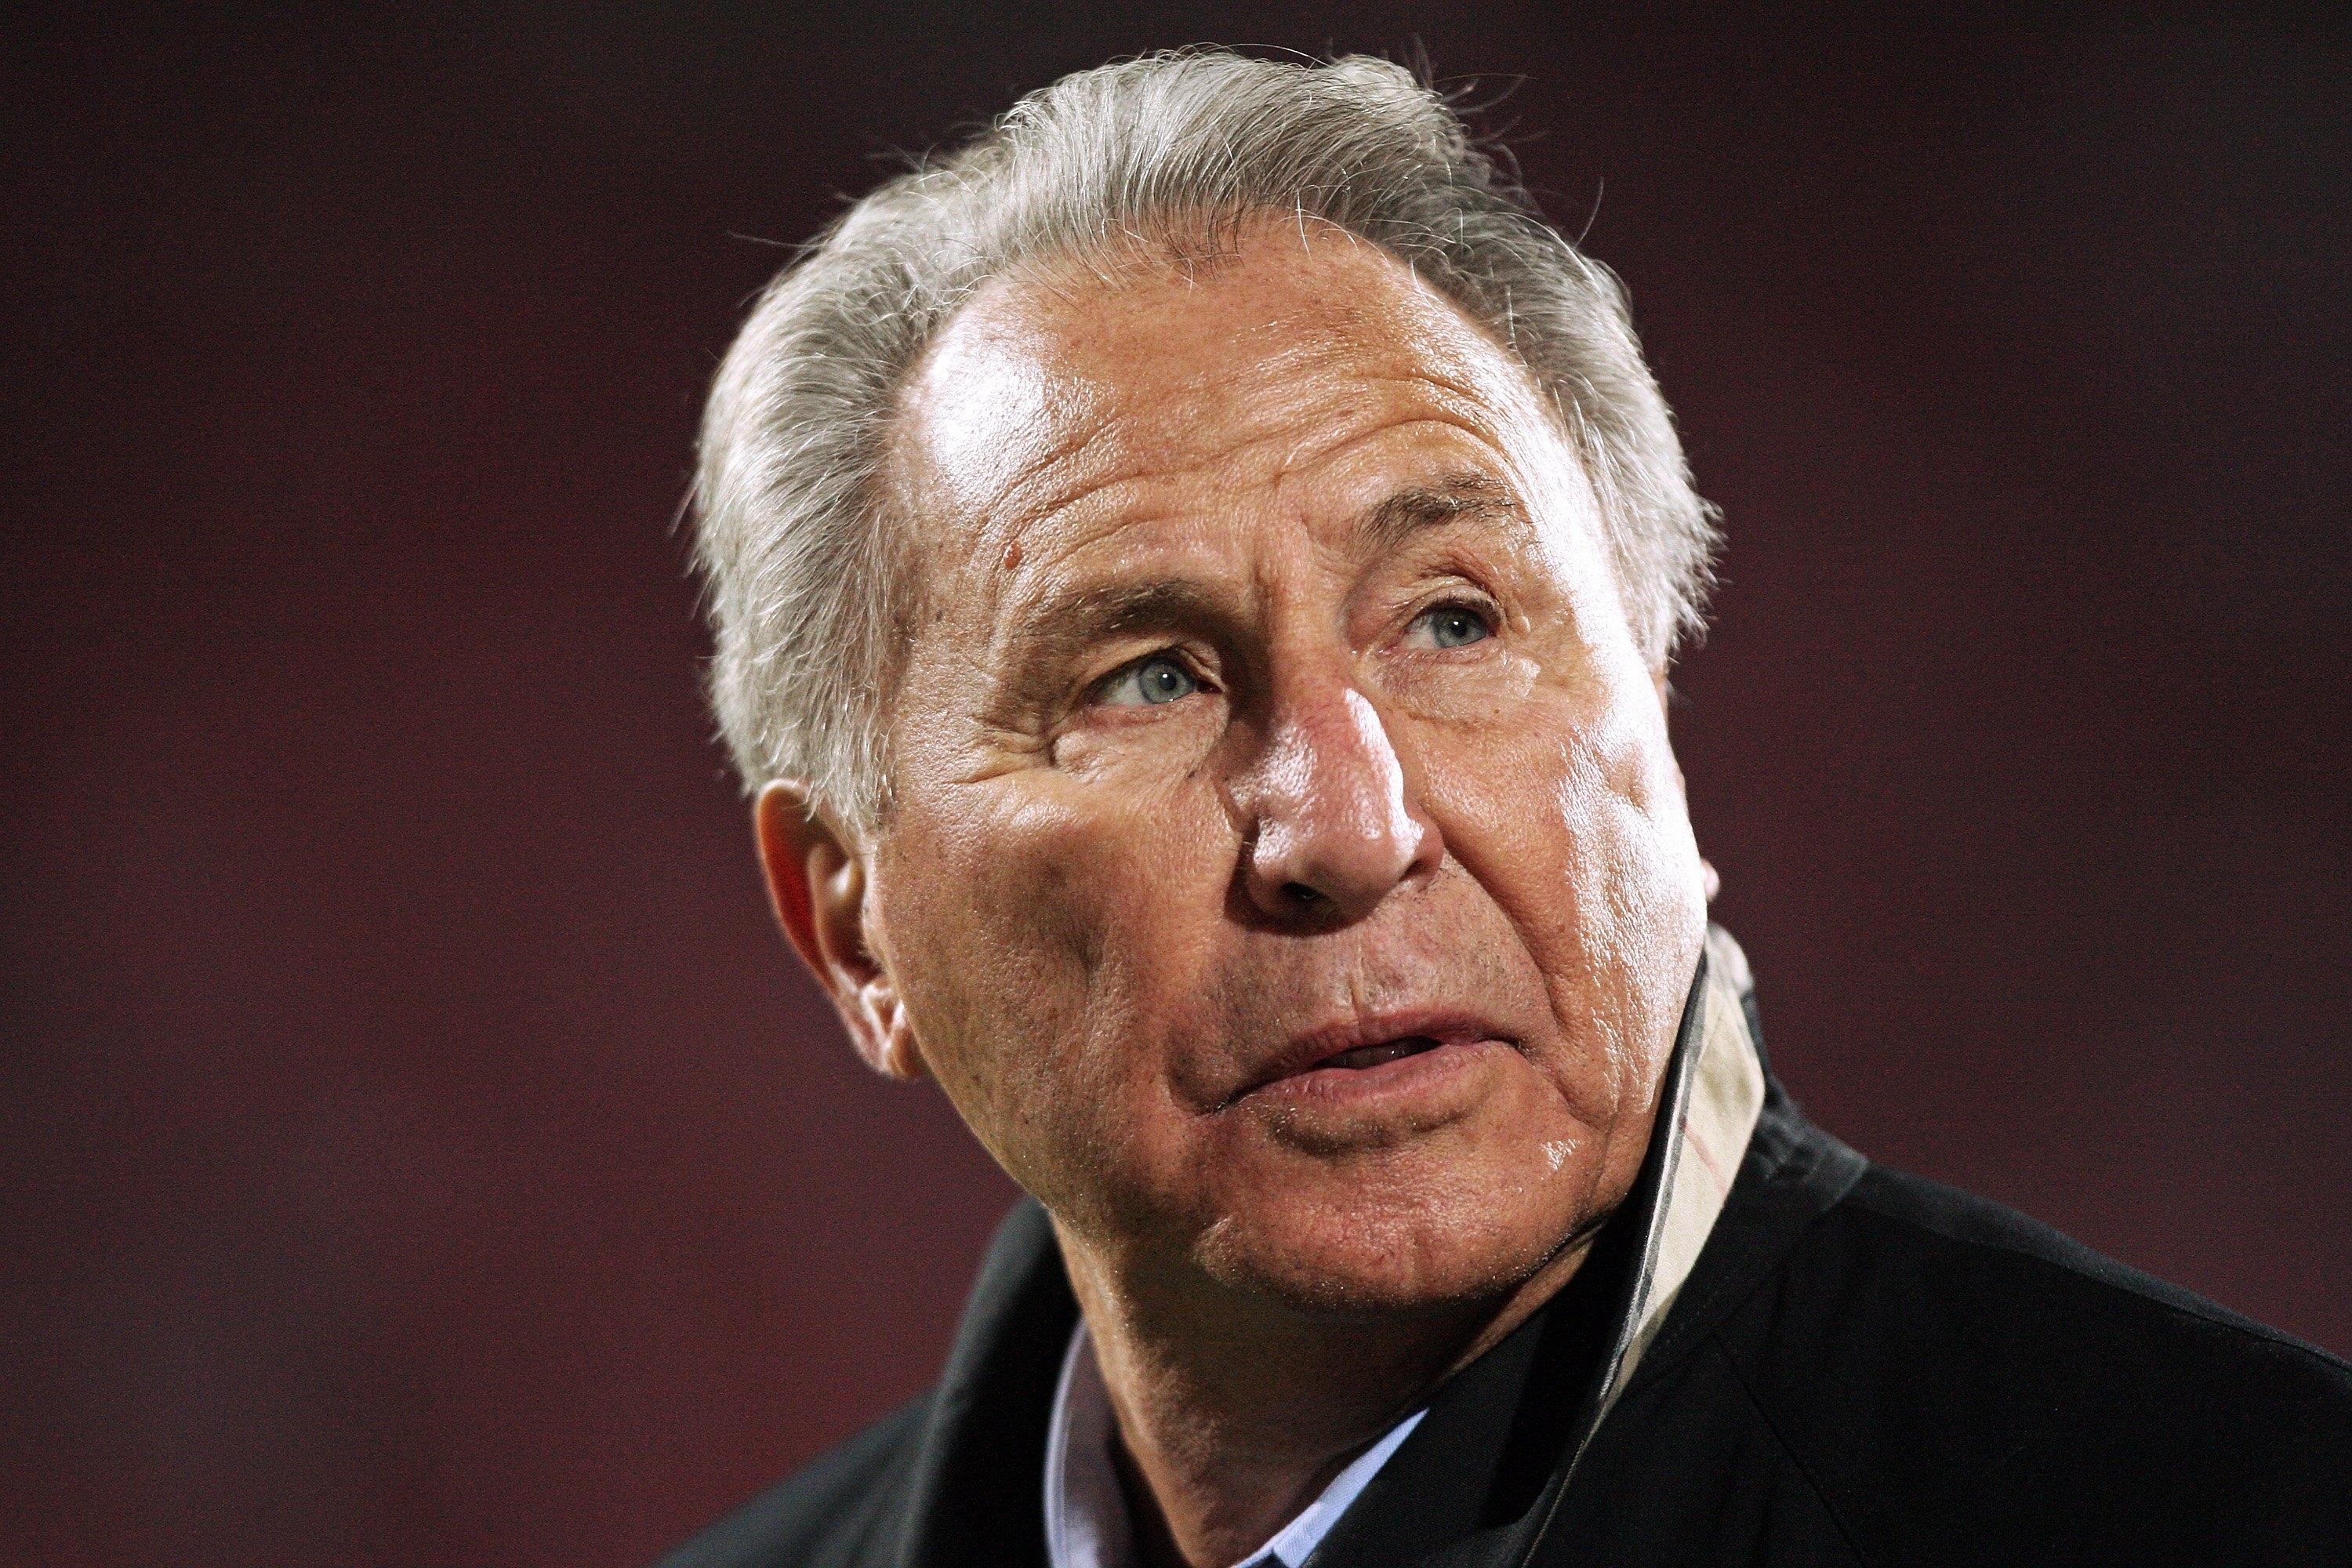 COLUMBUS, OH - OCTOBER 25: ESPN television personality Lee Corso watches the Ohio State Buckeyes play the Penn State Nittany Lions on October 25, 2008 at Ohio Stadium in Columbus, Ohio.  (Photo by Jamie Sabau/Getty Images)